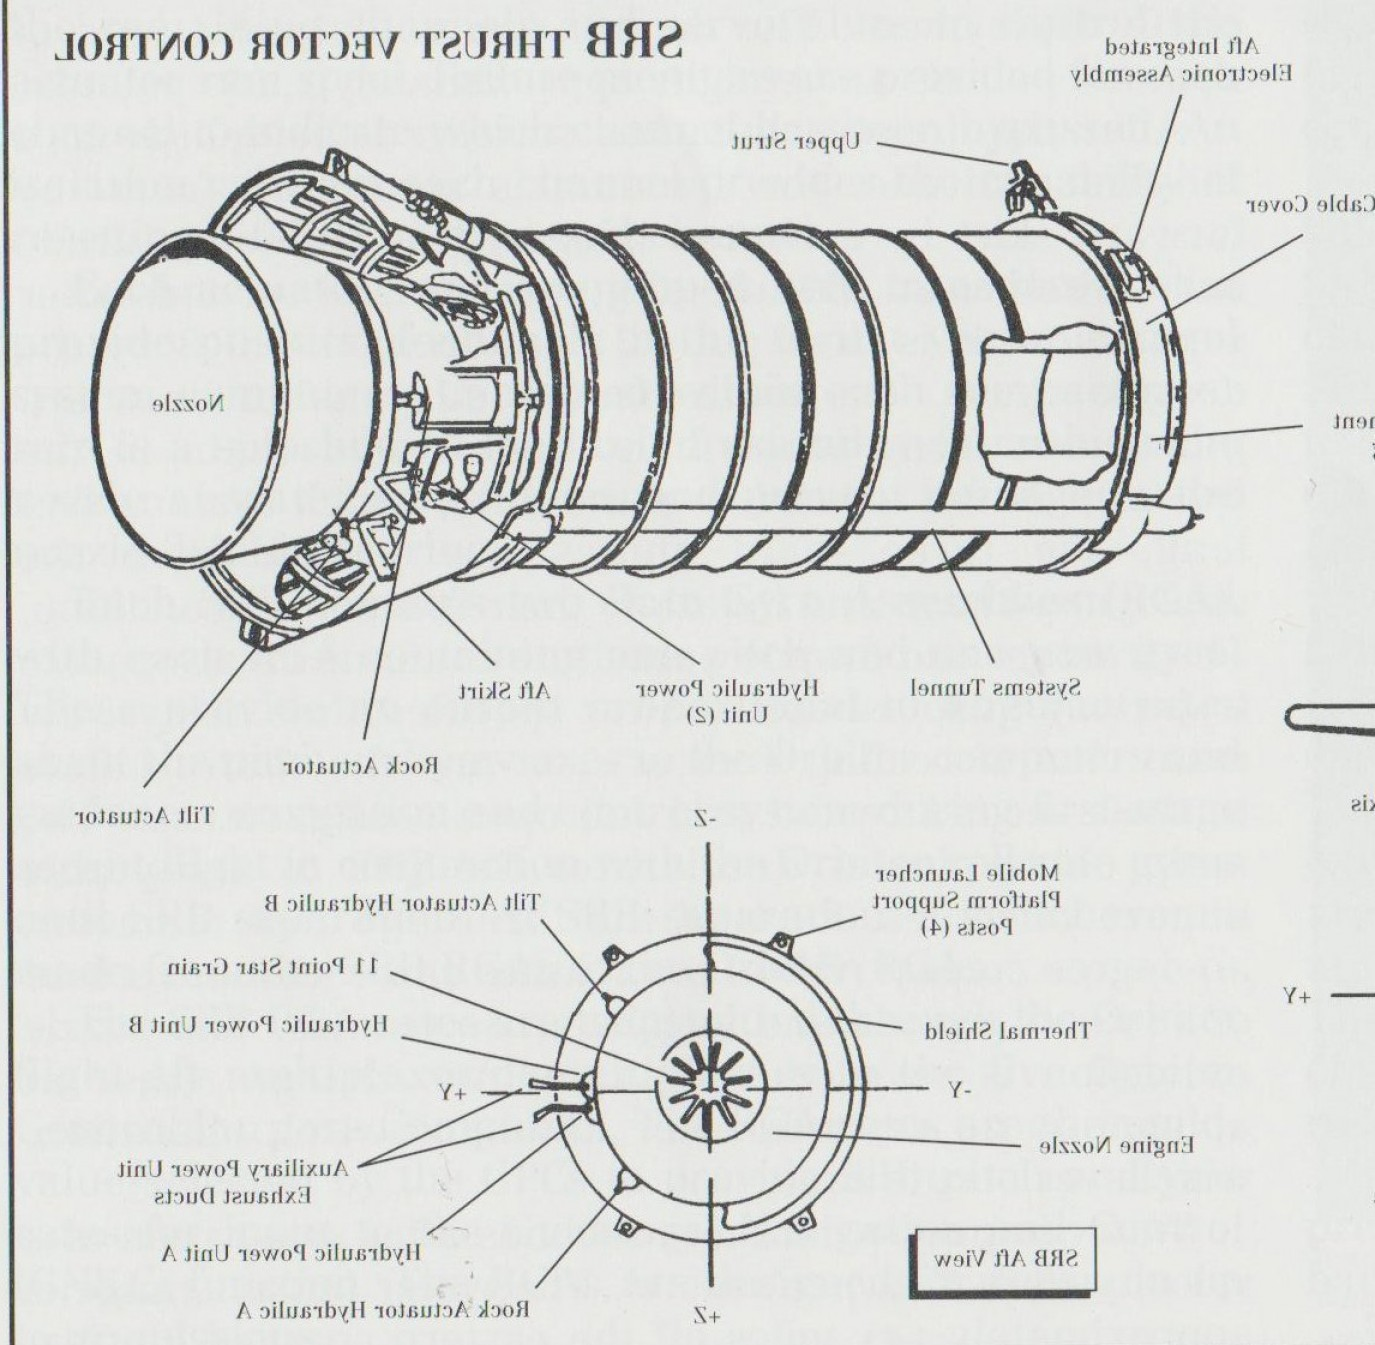 SRB Thrust Vector Control System: How Does A Single Srb Control Attitude